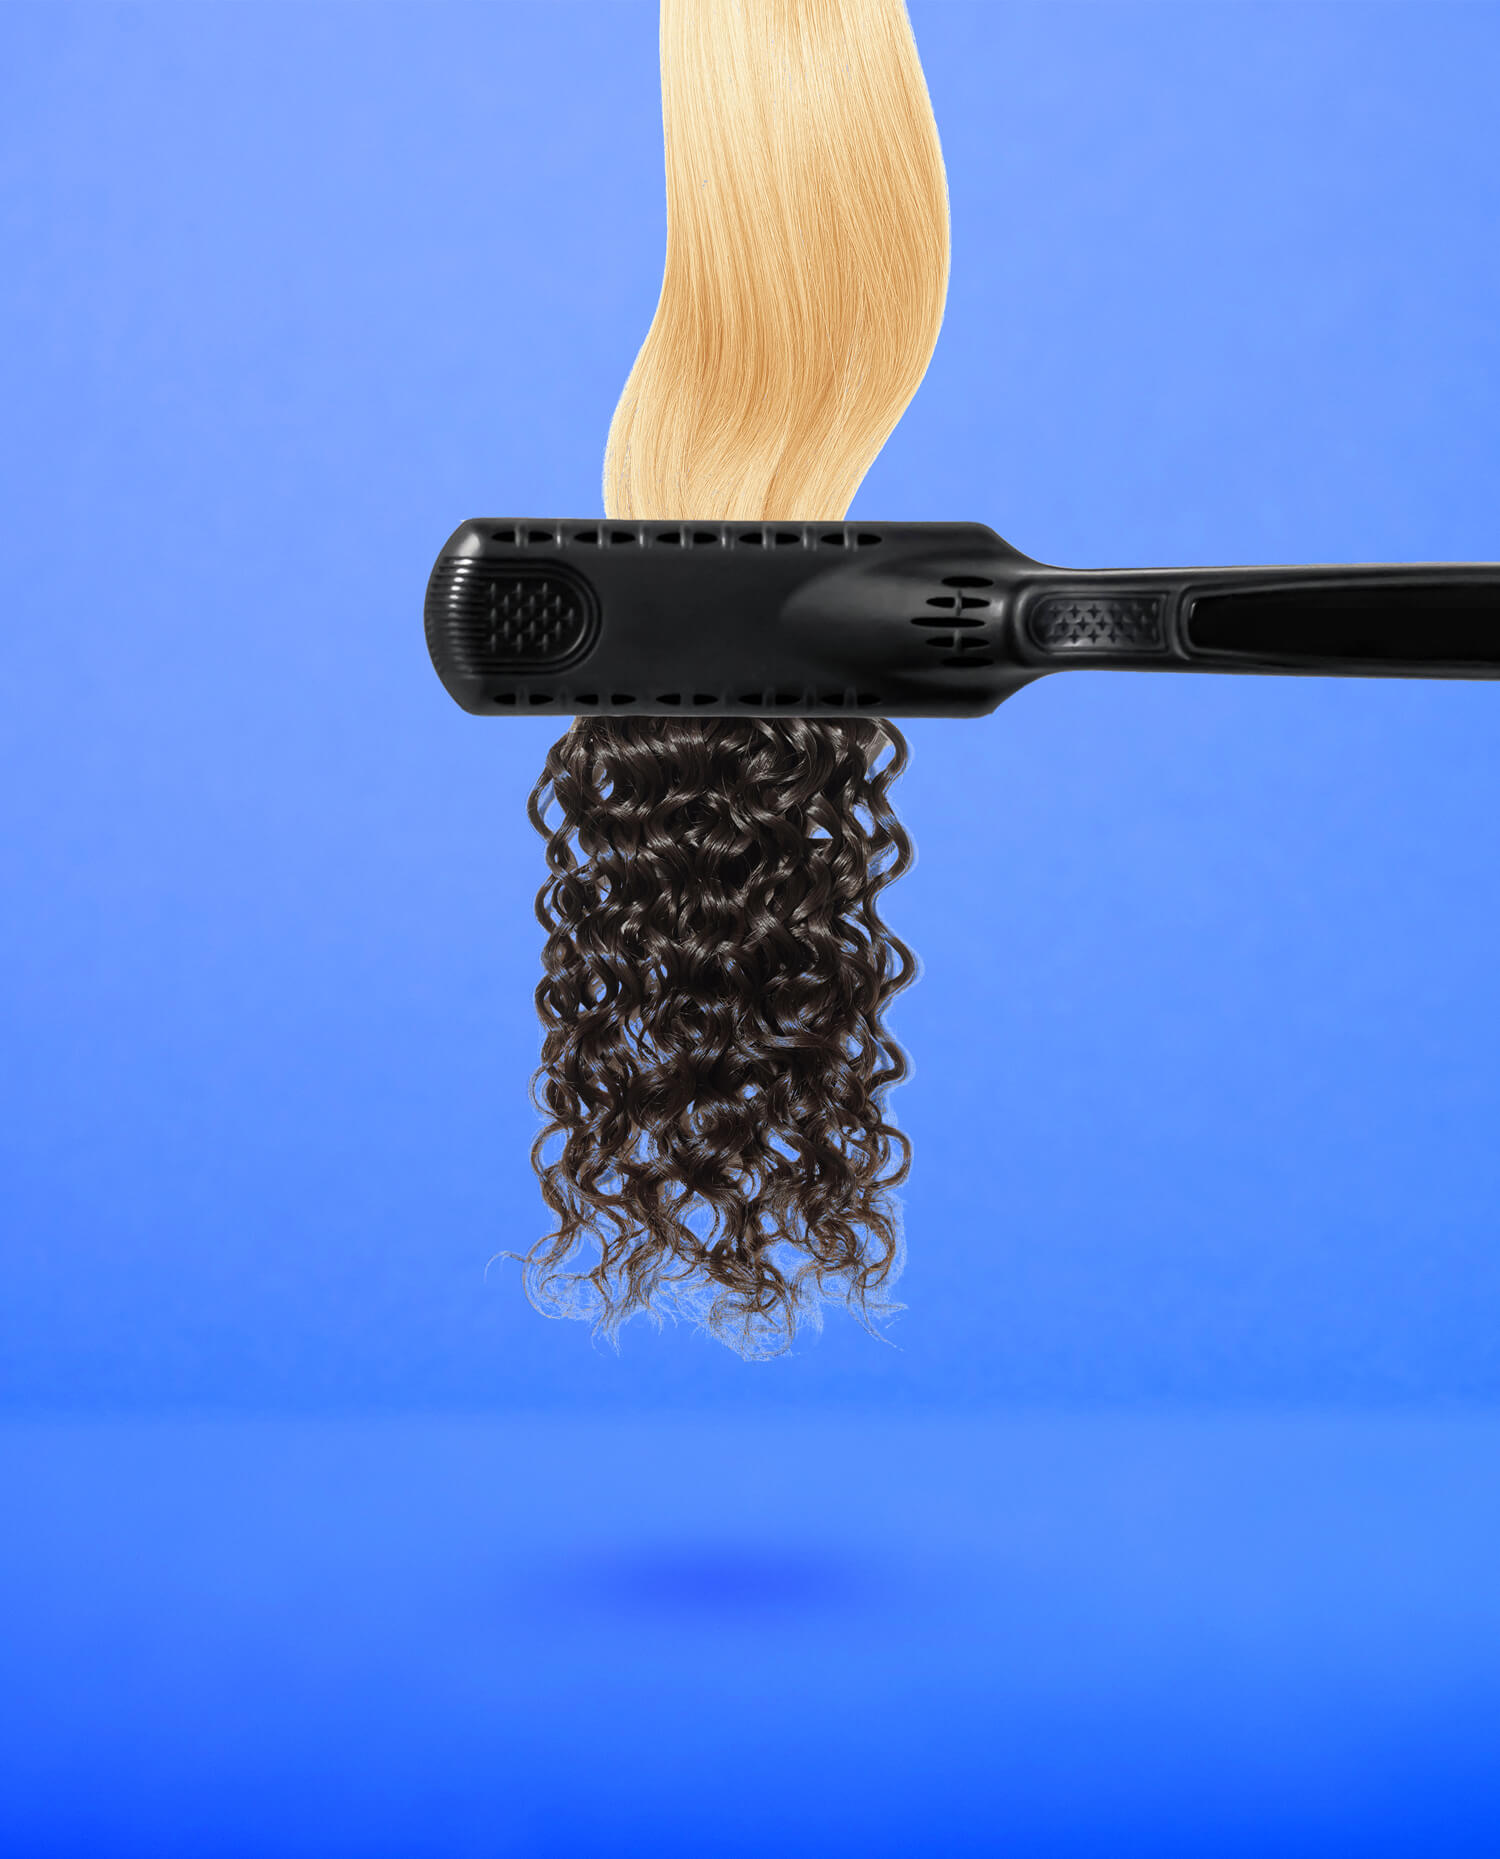 a83169eeb89 Curling iron with blonde hair on one side and curly black hair on the other